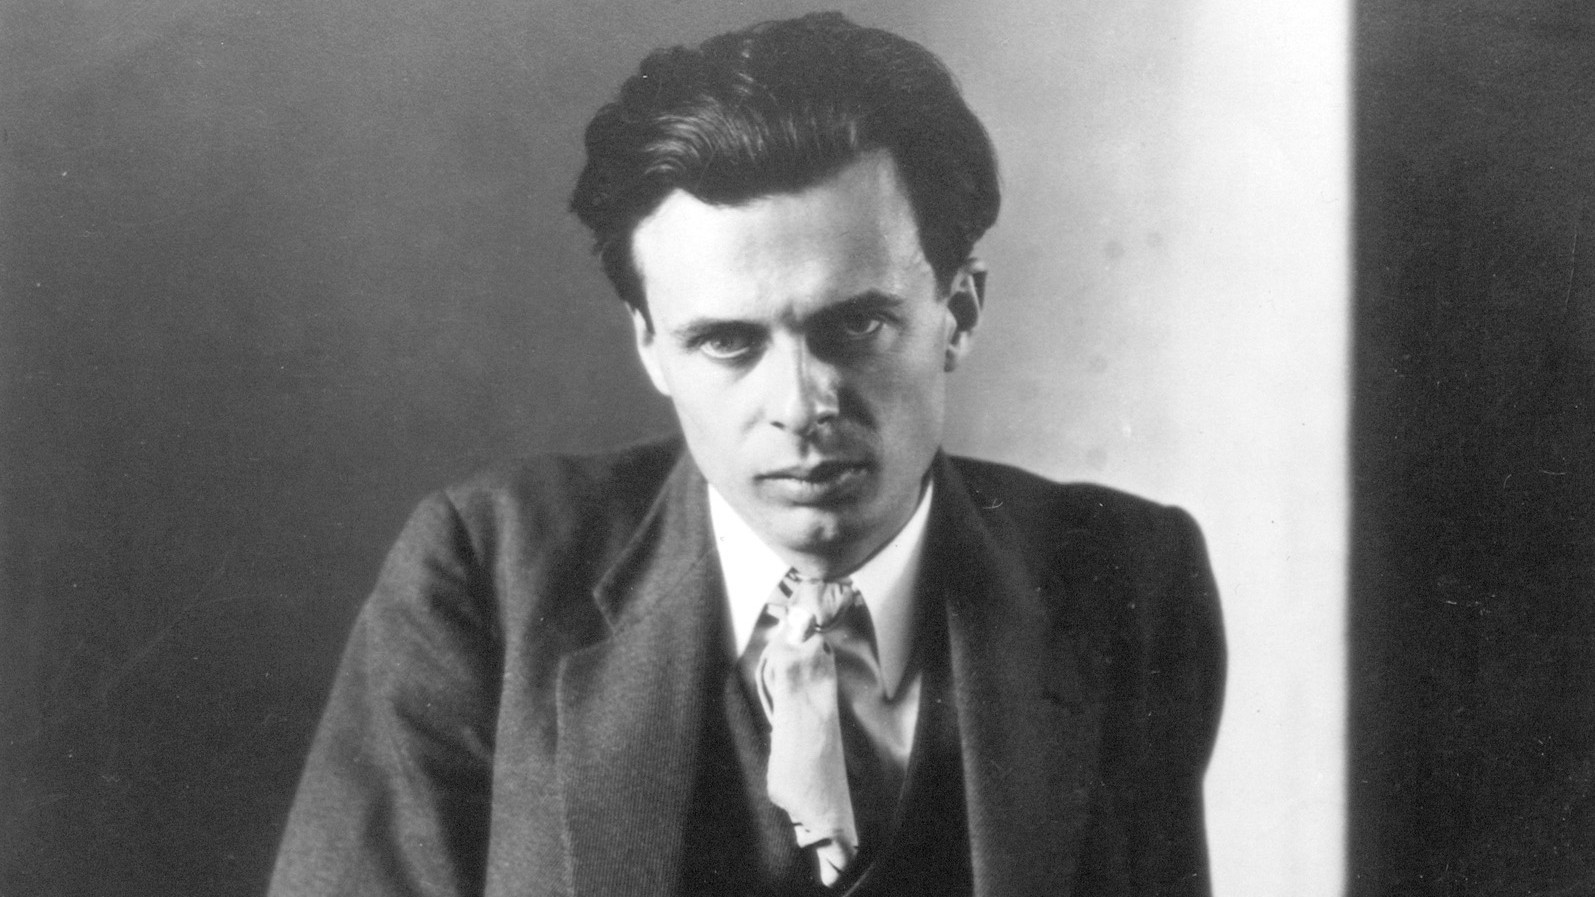 happy birthday aldous huxley la times